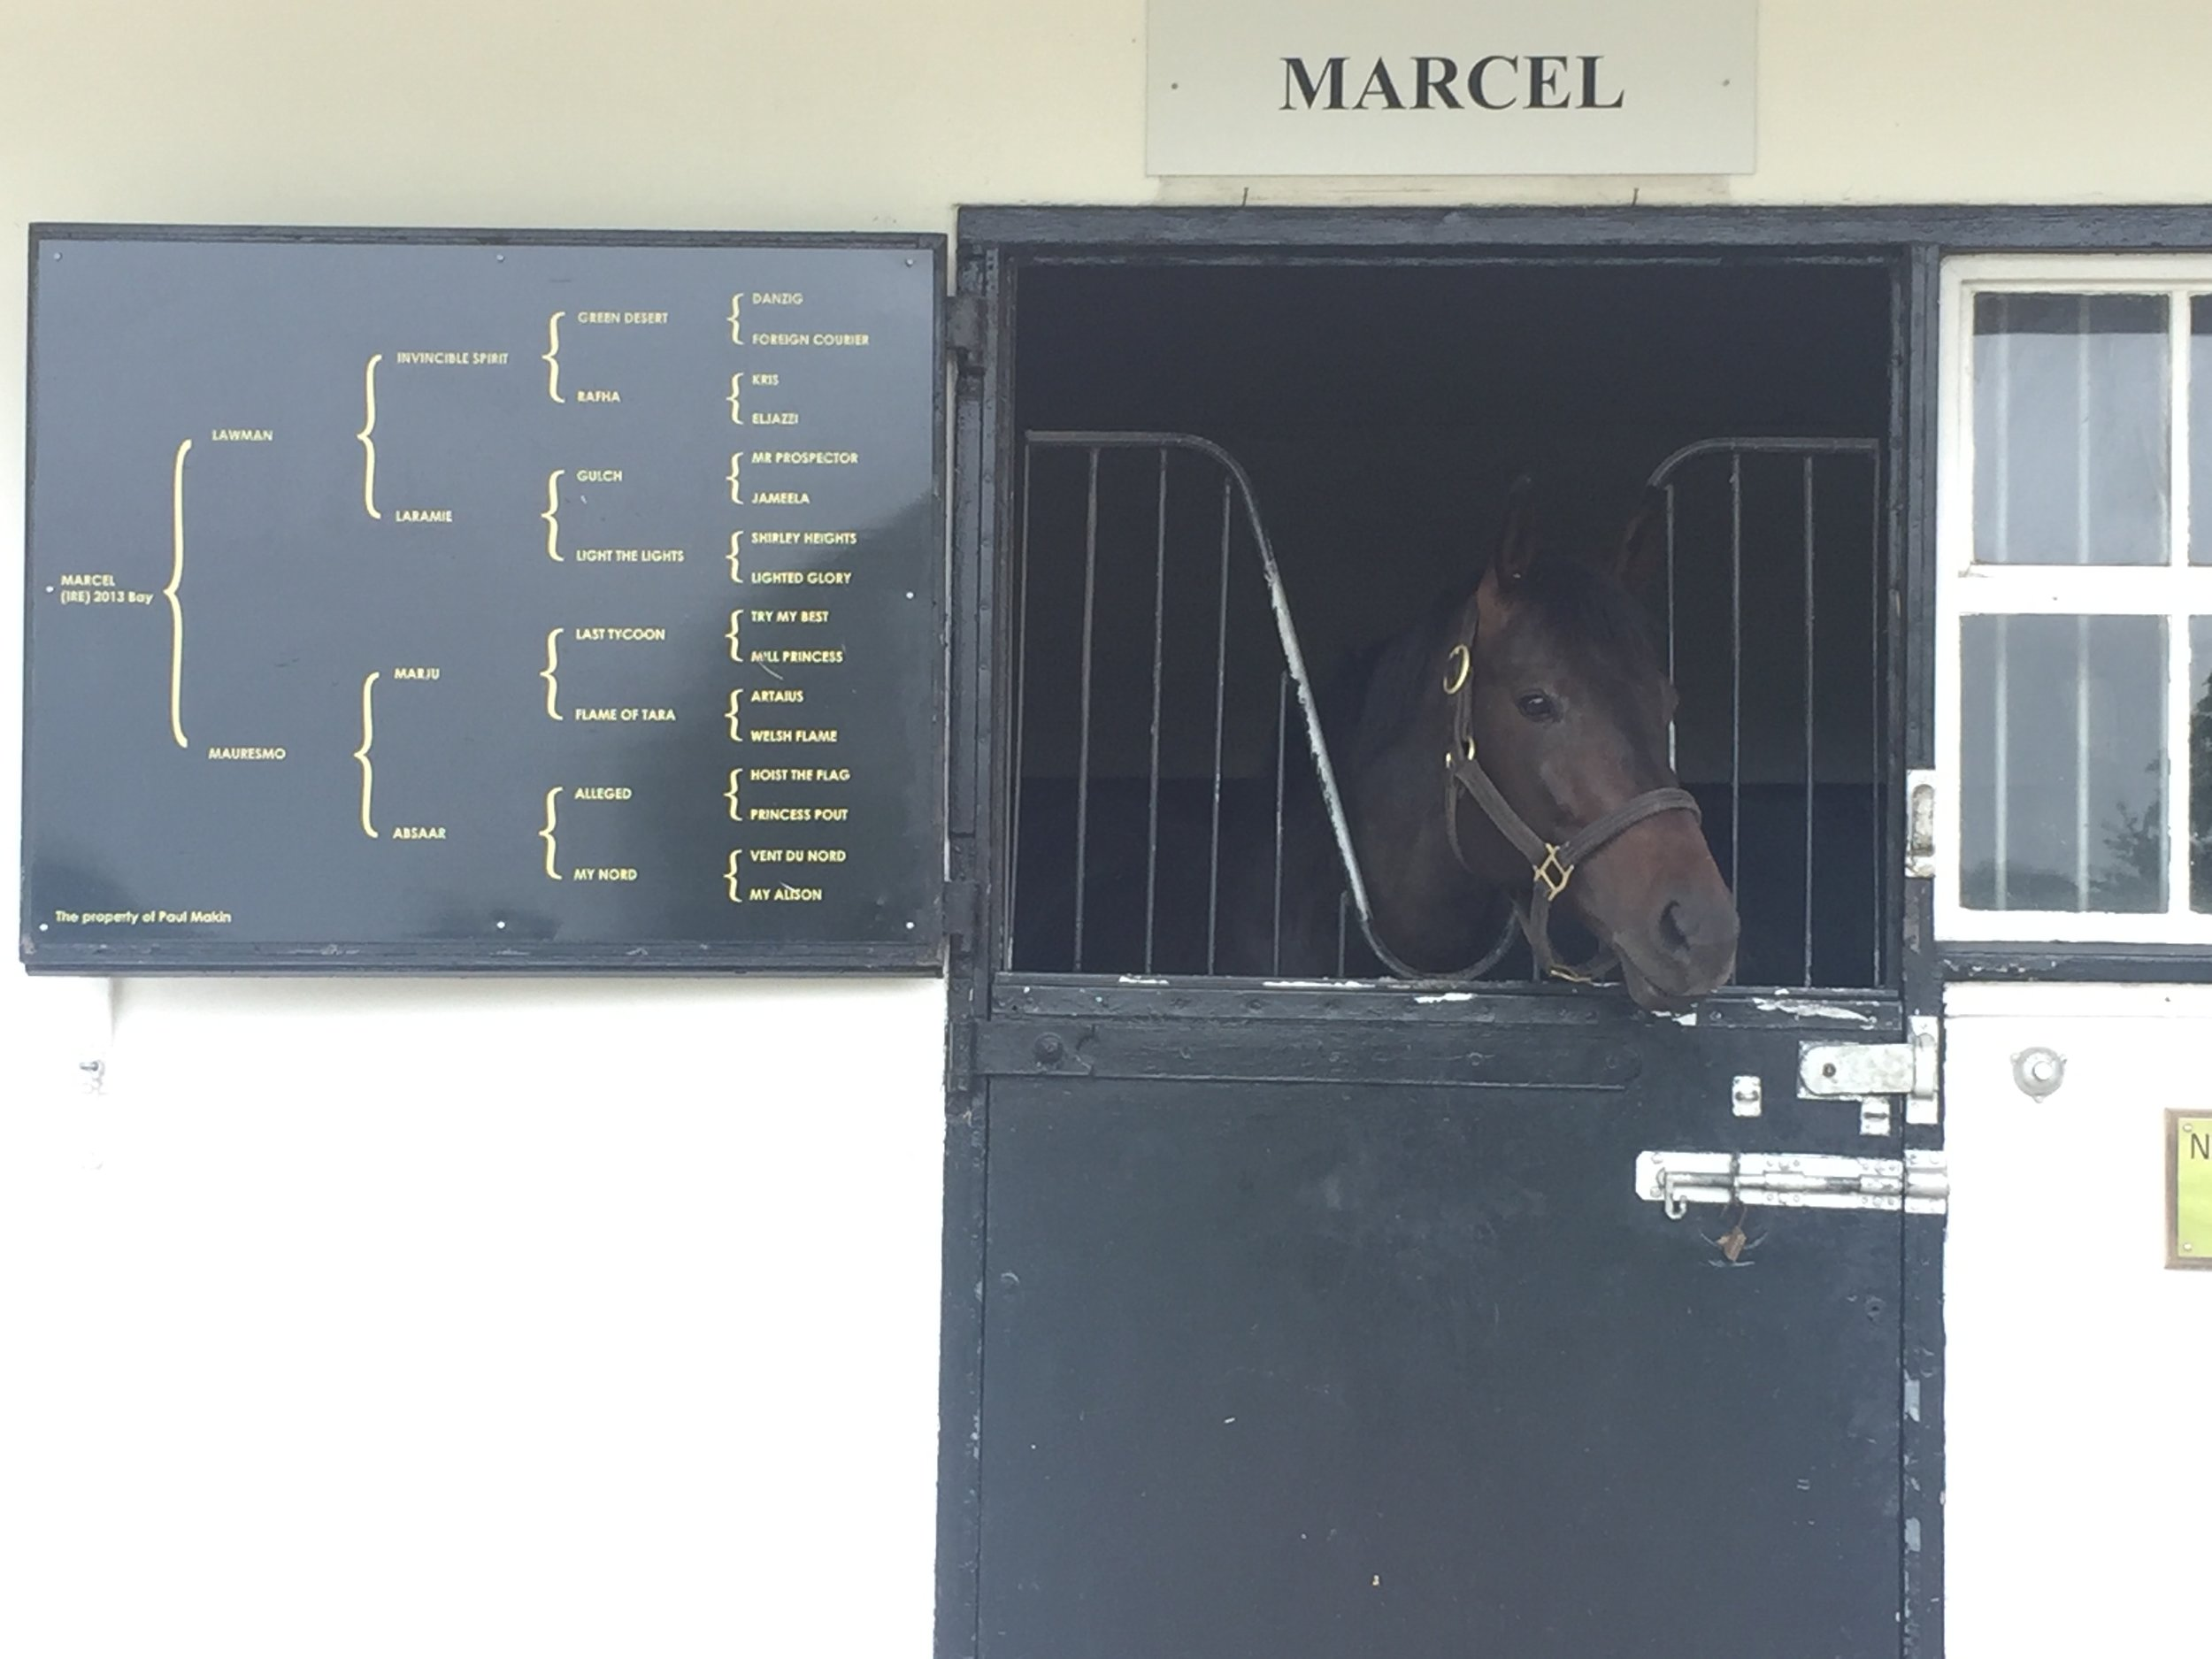 Marcel one of the stallions at the stud